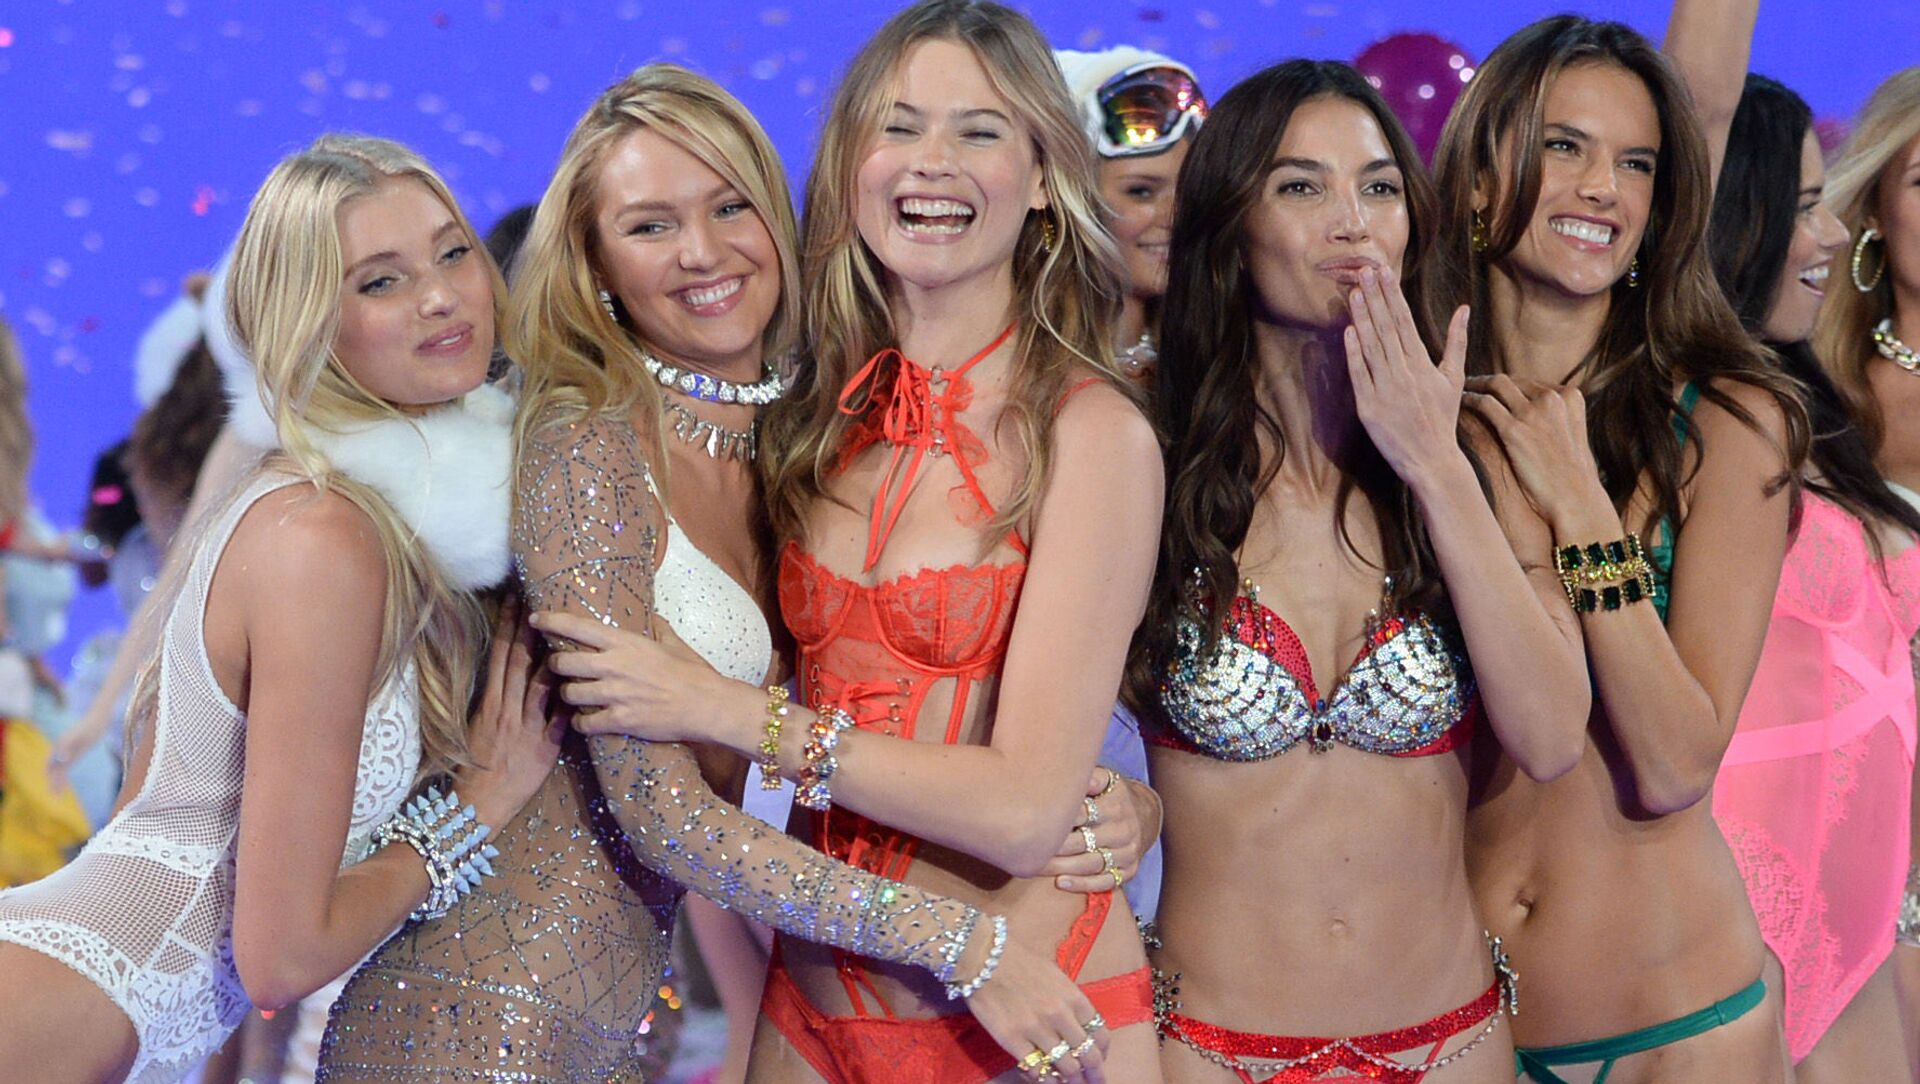 Elsa Hosk, from left, Candice Swanepoel, Behati Prinsloo, Lily Aldridge and Alessandra Ambrosio walk the runway during the Victoria's Secret Fashion Show at the Lexington Armory on Tuesday, Nov. 10, 2015, in New York. The Victoria's Secret Fashion Show will air on CBS on Tuesday, Dec. 8, at 10pm EST. - Sputnik International, 1920, 31.07.2021